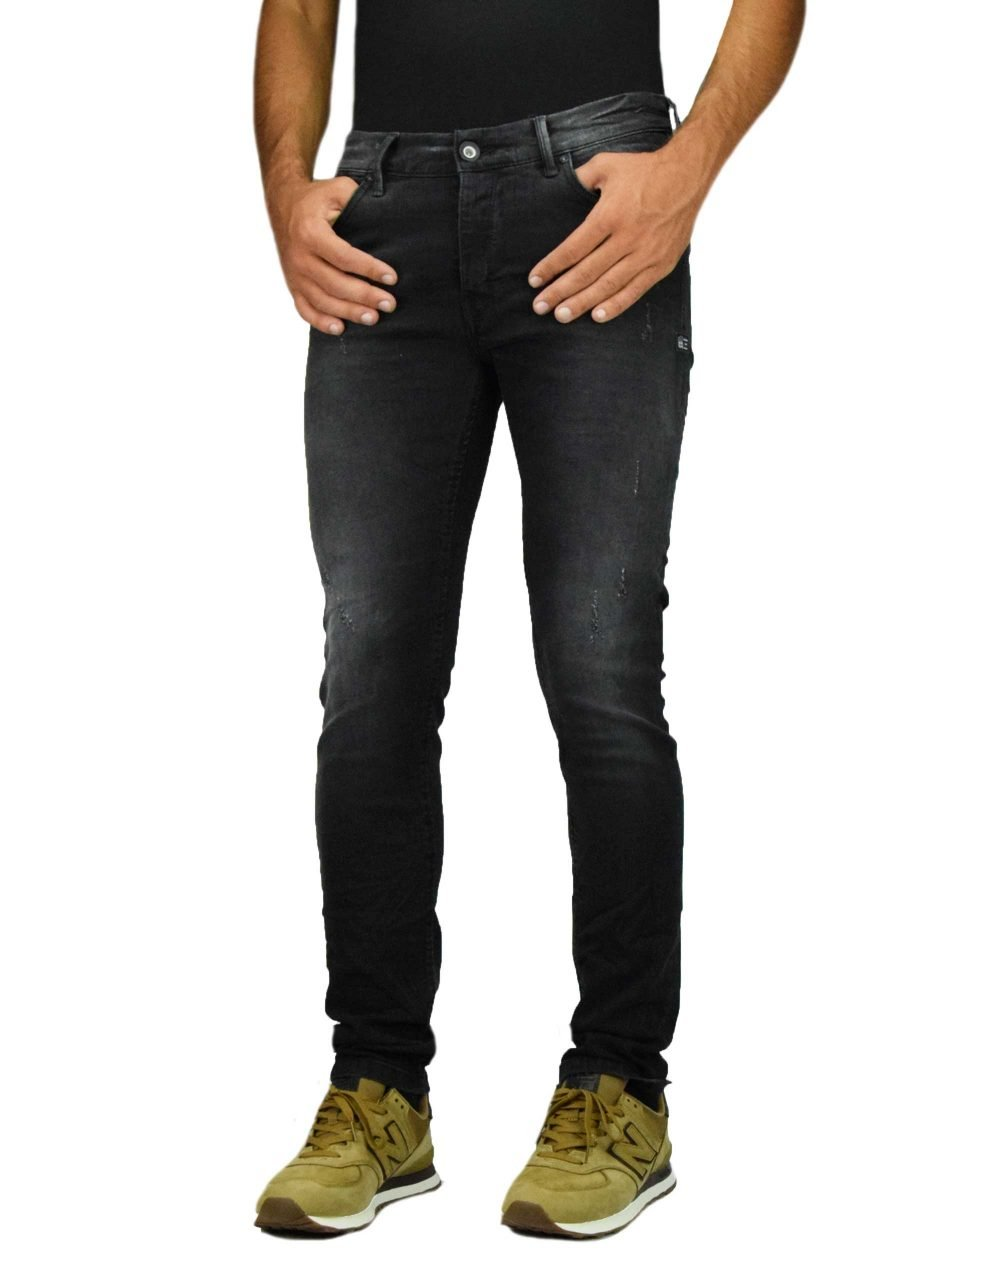 Cover Bruno Skinny (G5560) Black Denim